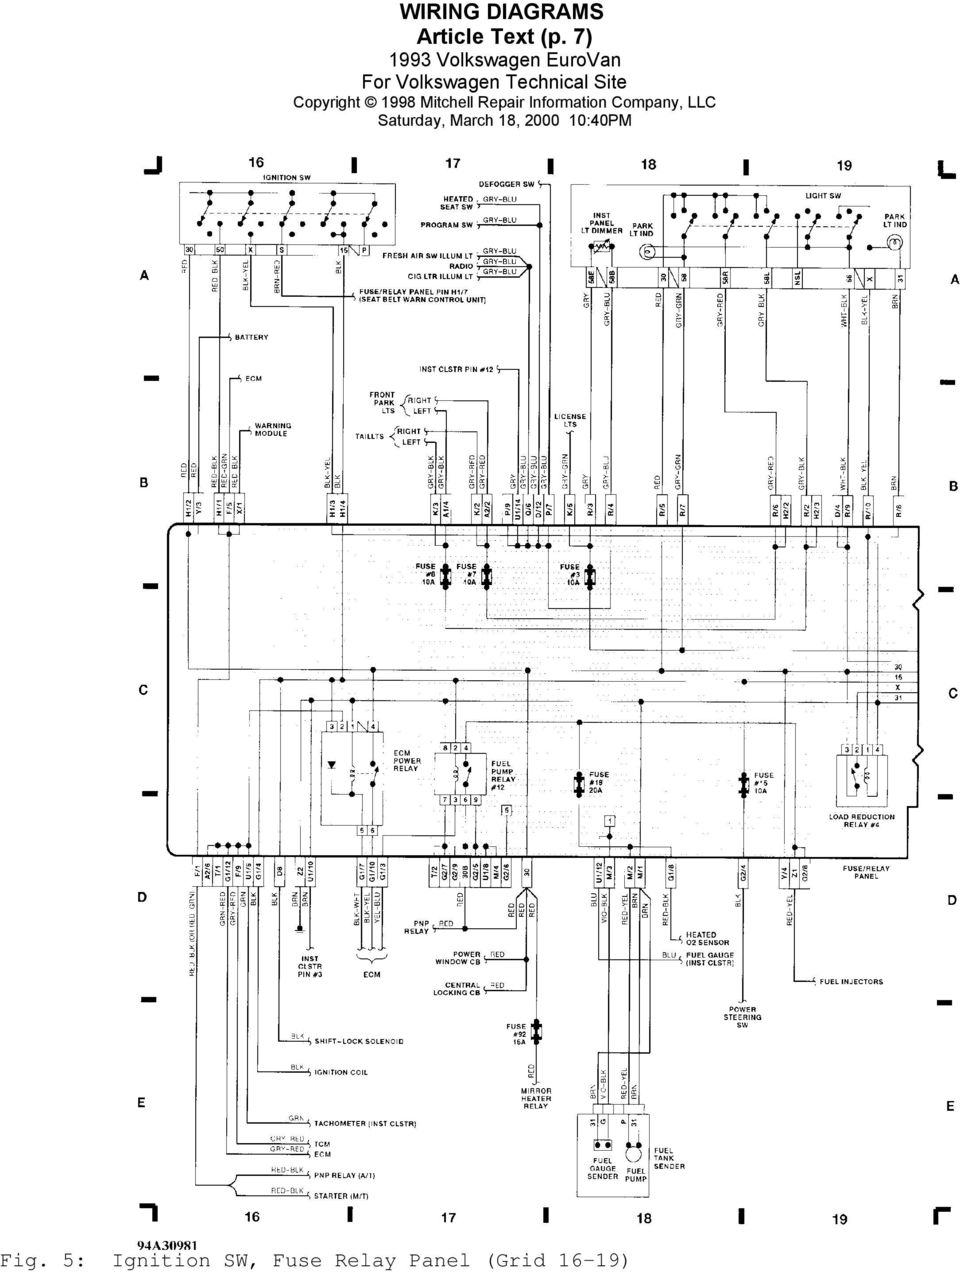 1993 wiring diagrams volkswagen wiring diagrams